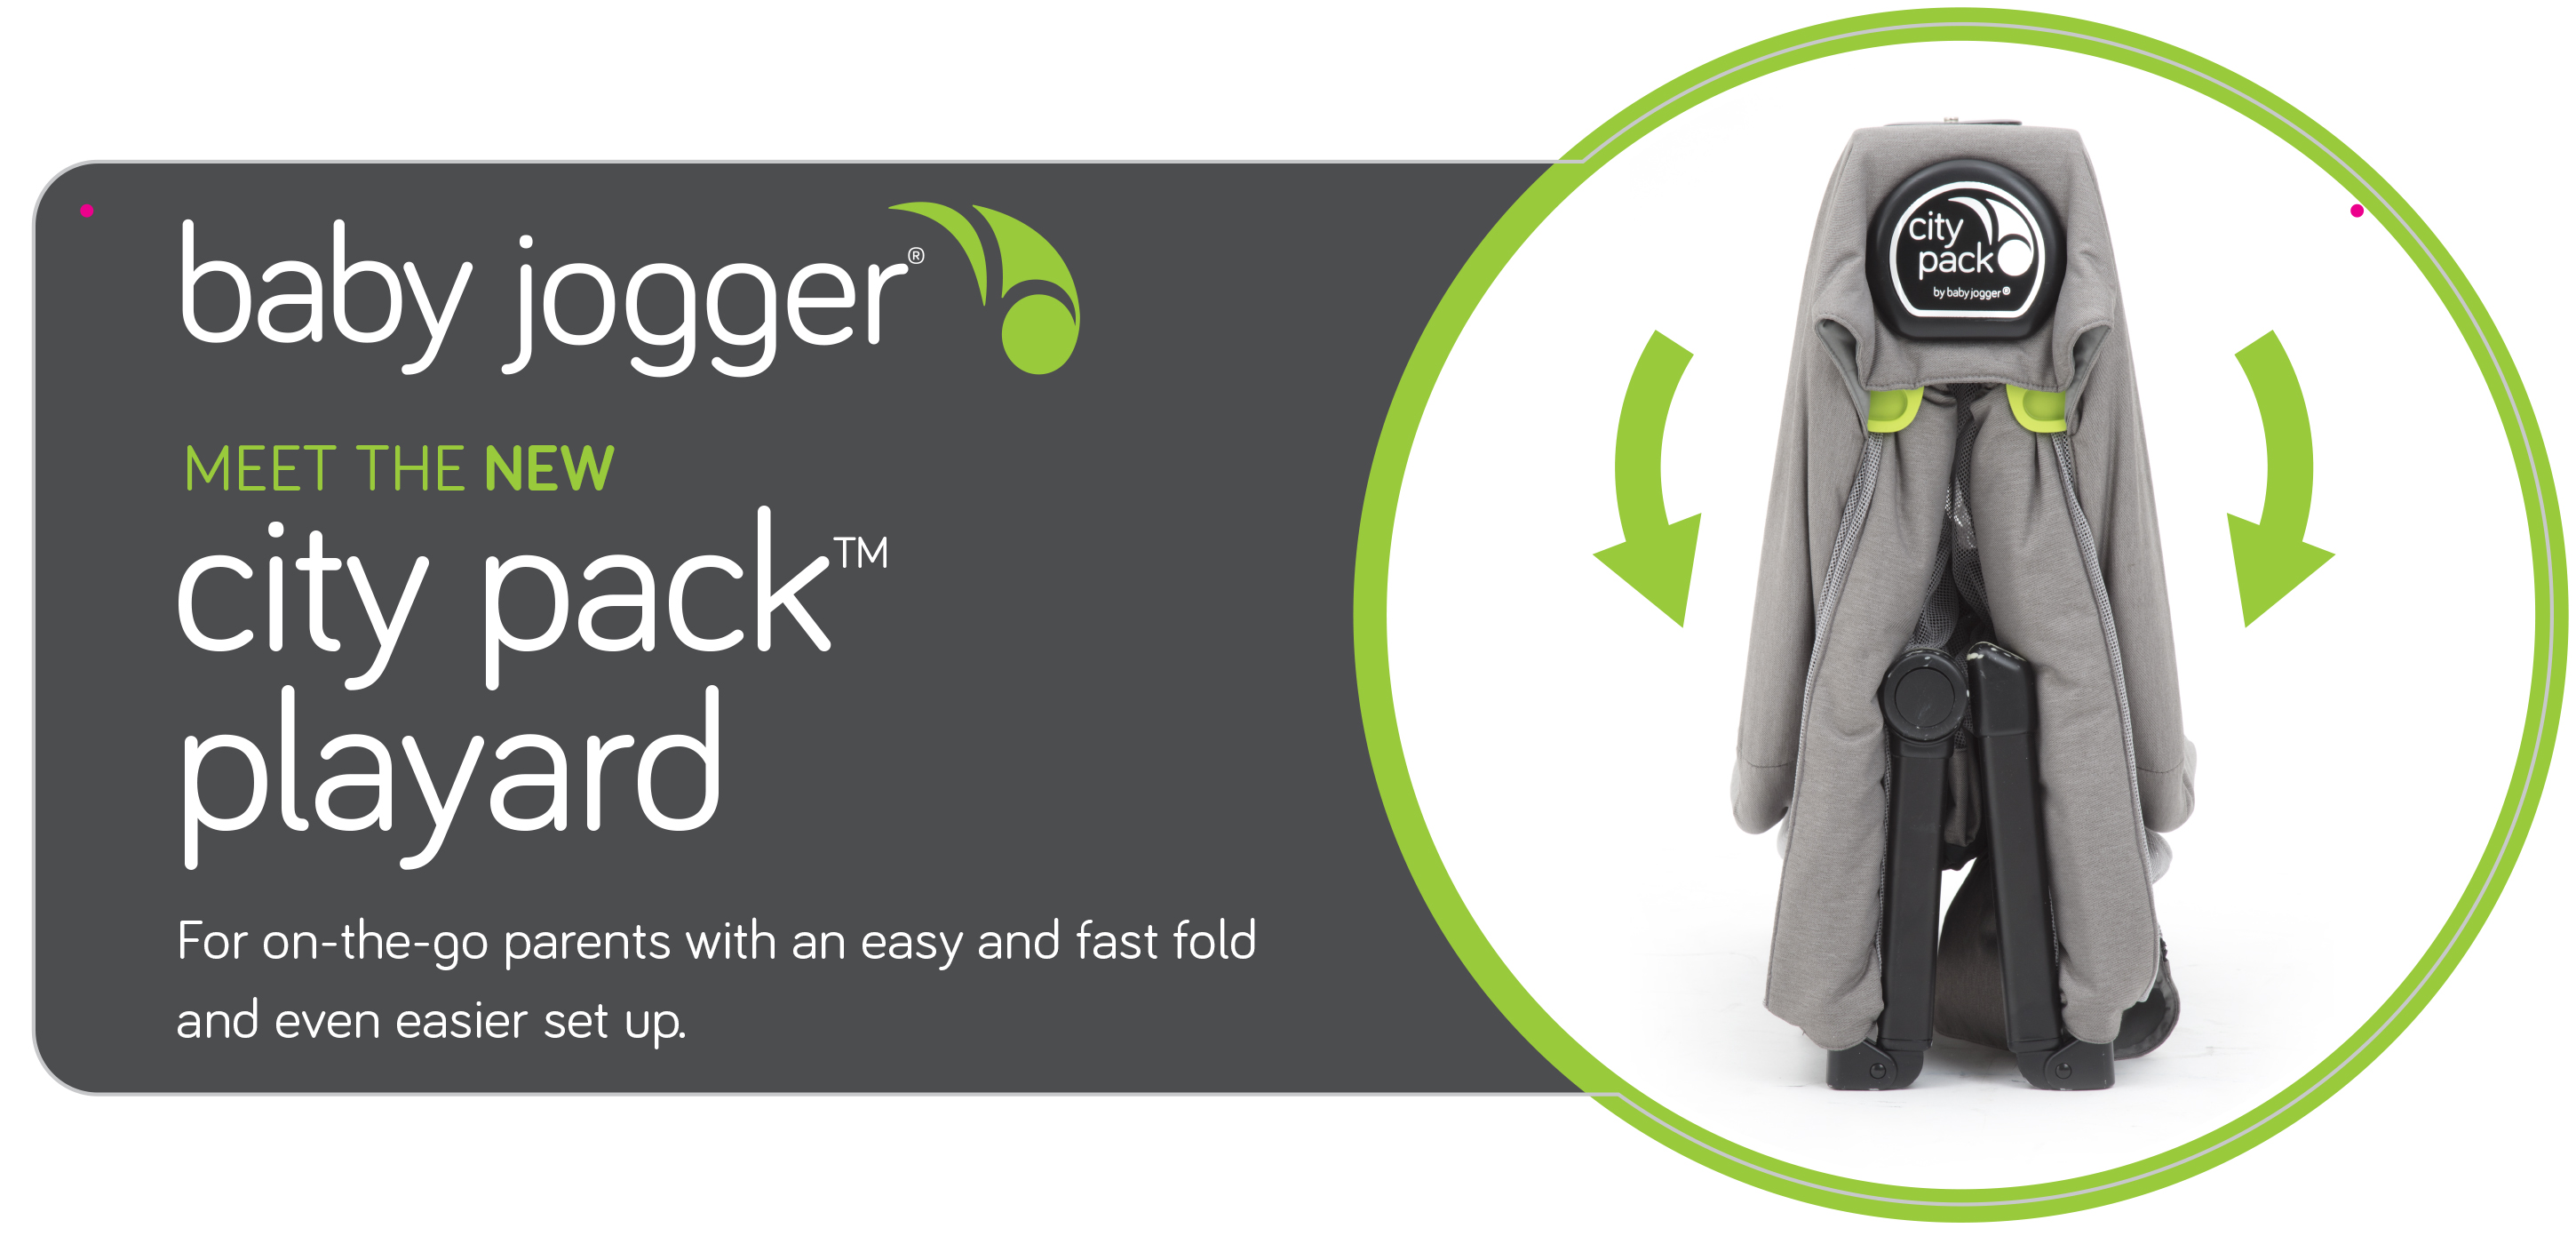 Baby Jogger Point of Purchase Tag